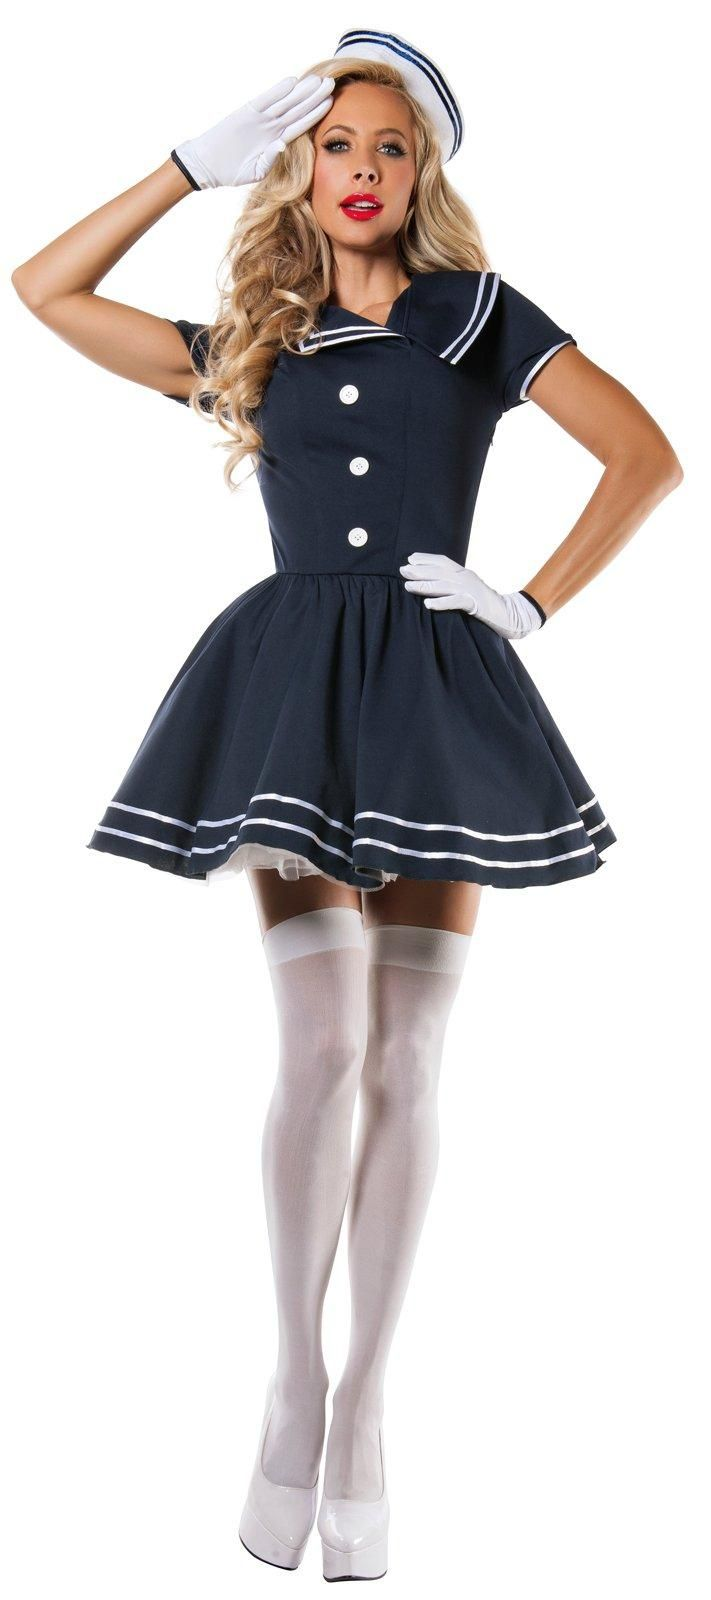 sailor captain costume for adults from costumeexpresscom sailor halloween costumesadult - Halloween Costumes Without Dressing Up